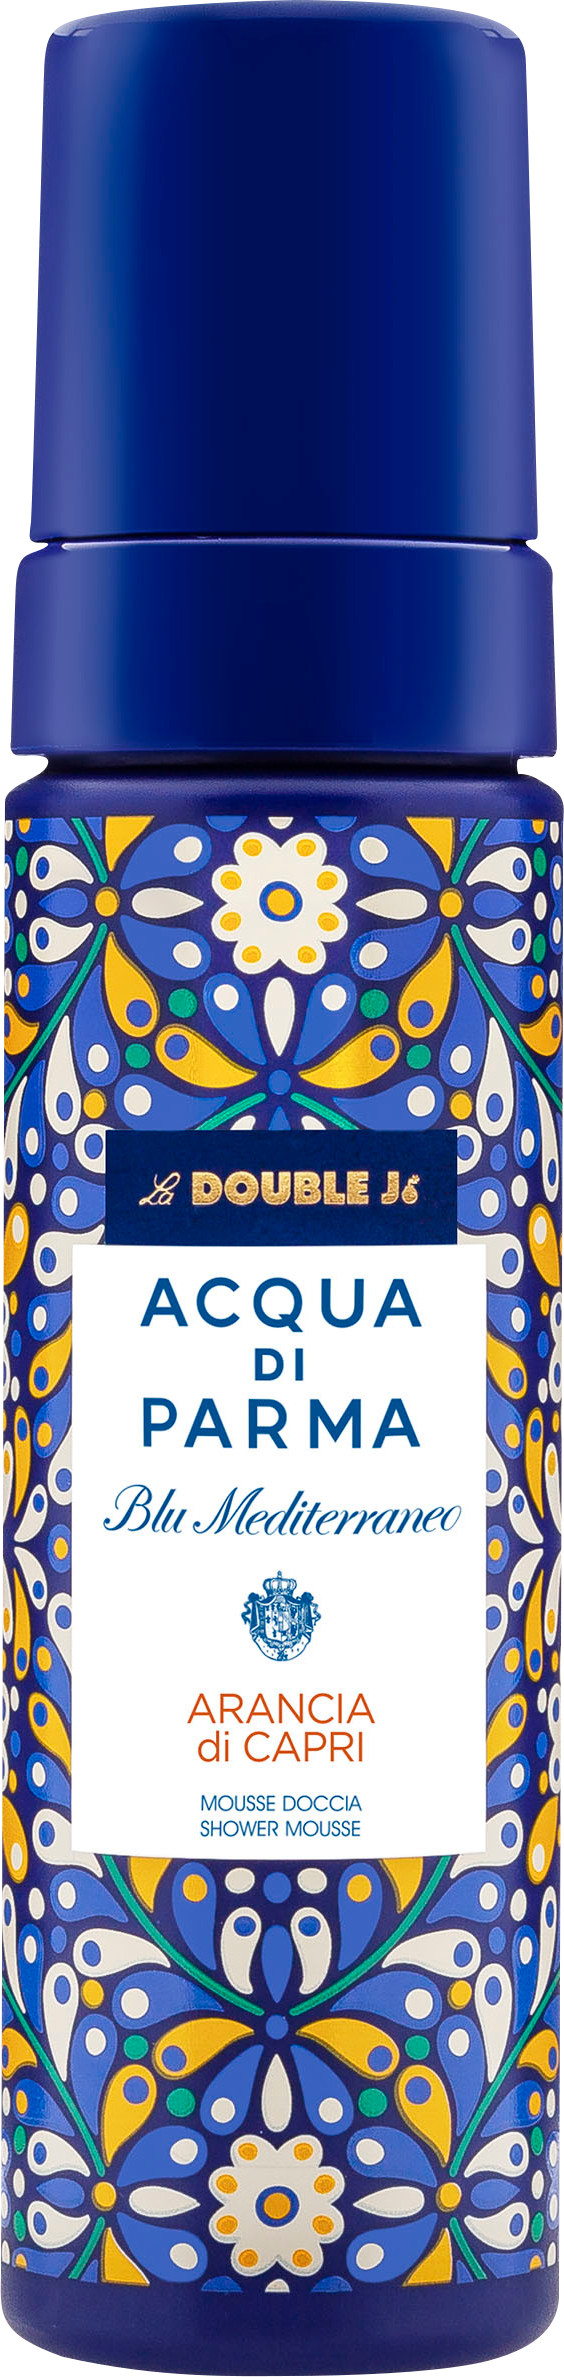 Fragrance Acqua Di Parma Blu Mediterraneo Arancia di Capri Shower Mousse By La Double J